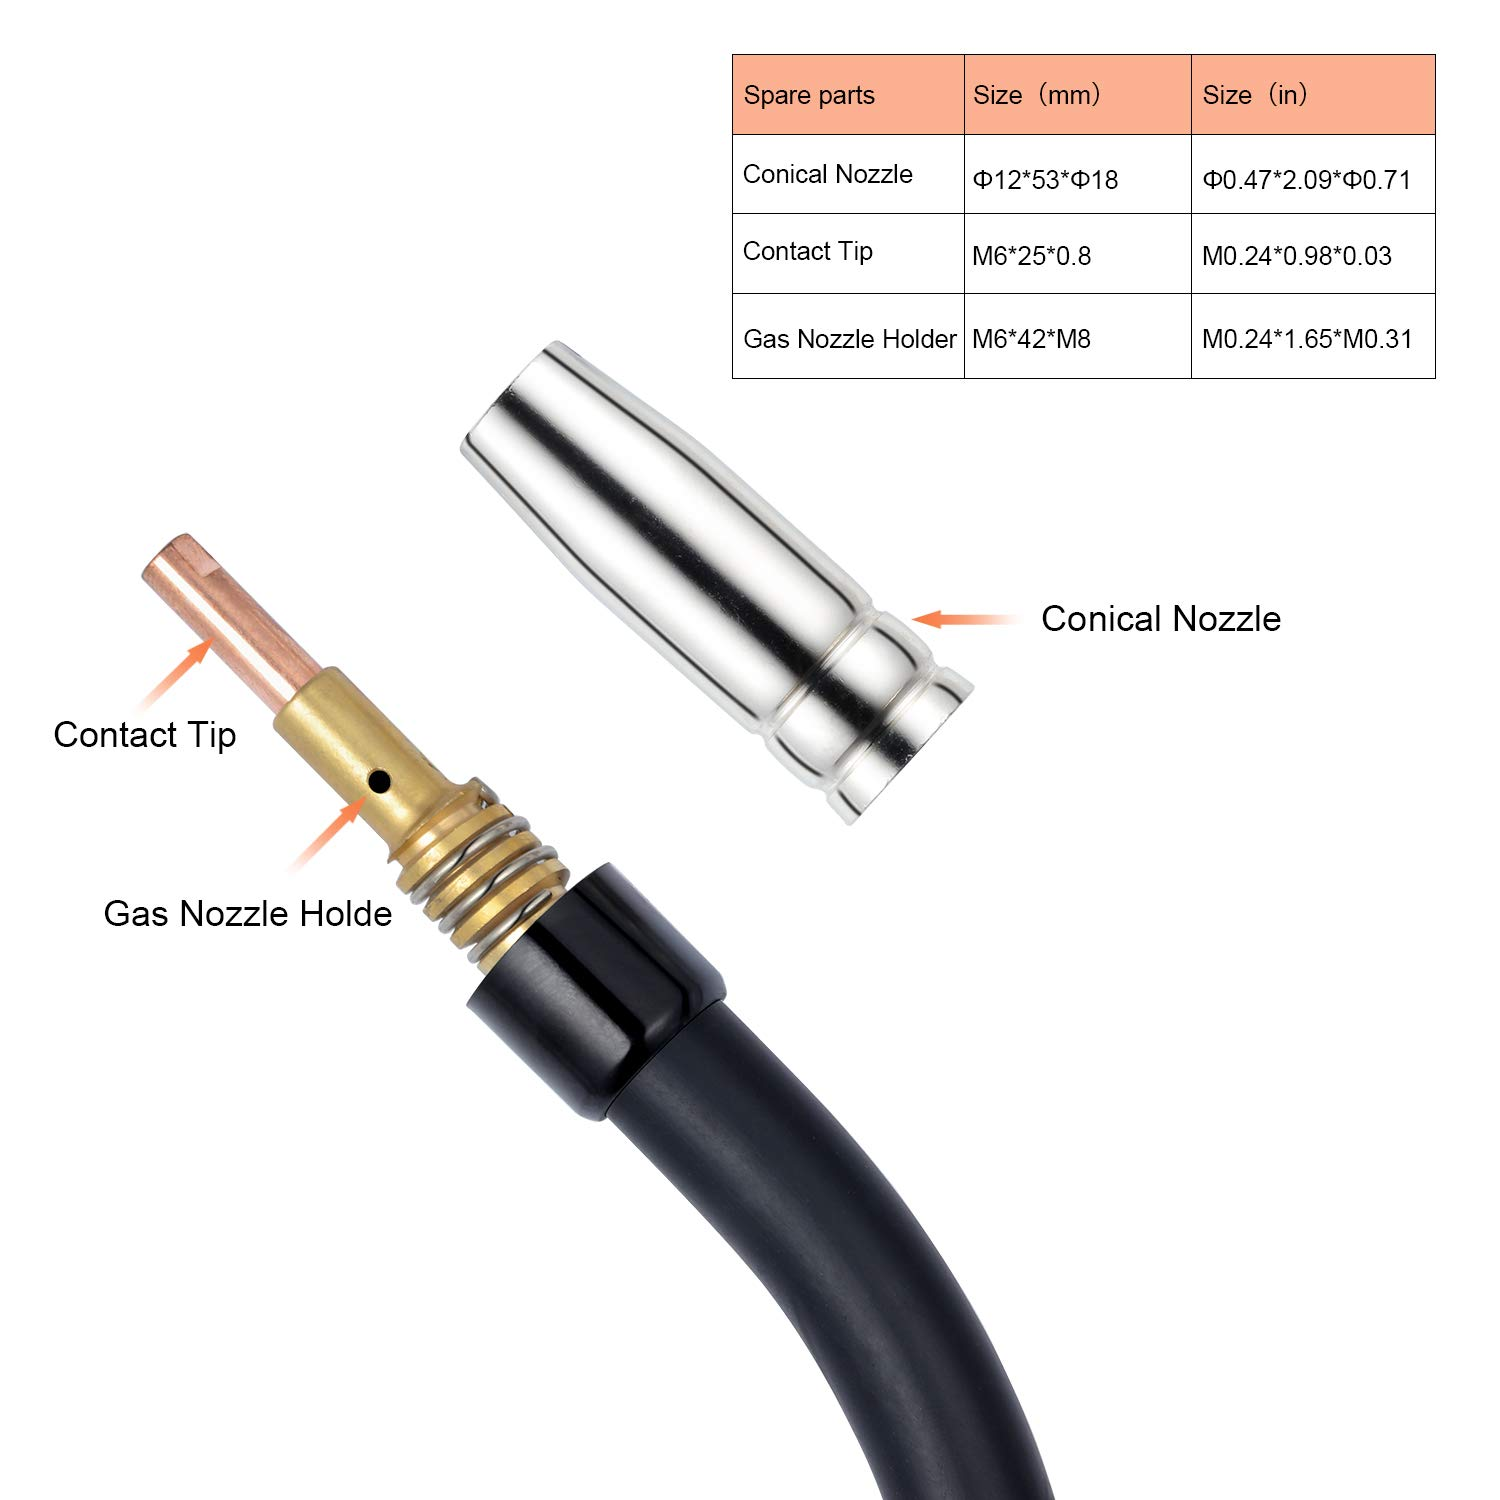 MIG Torch MB24 220A MIG Welders Mag Torches CO2 Welding Euro Connector 10ft 3M Cable MIG Welding Machine MB24 Binzel Type Pulse Mag Welders